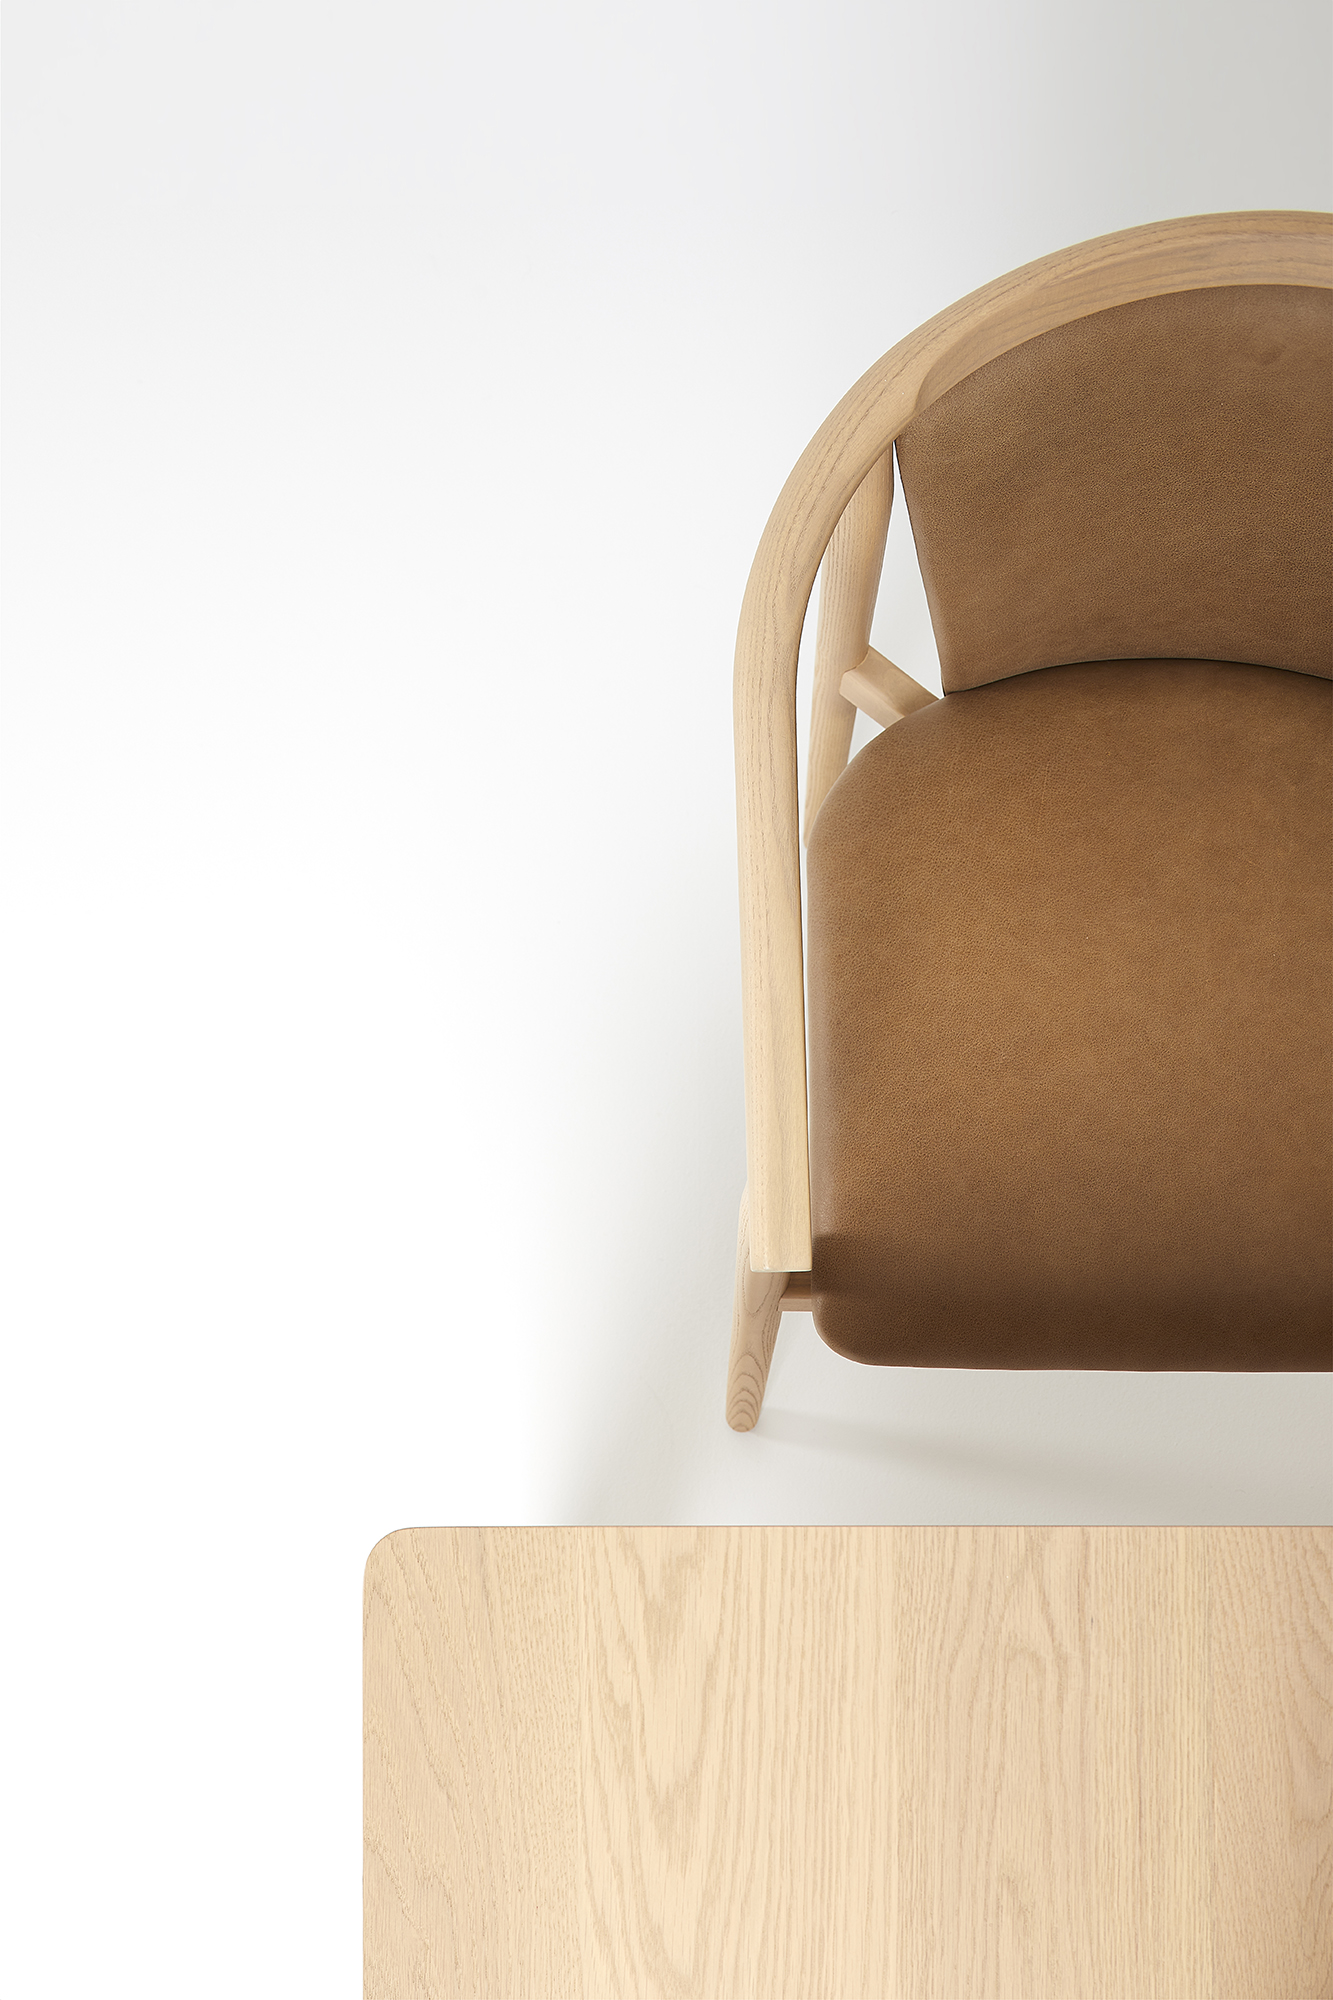 ADV_180911_O-Chair-Table-Detail-0018_001.jpg